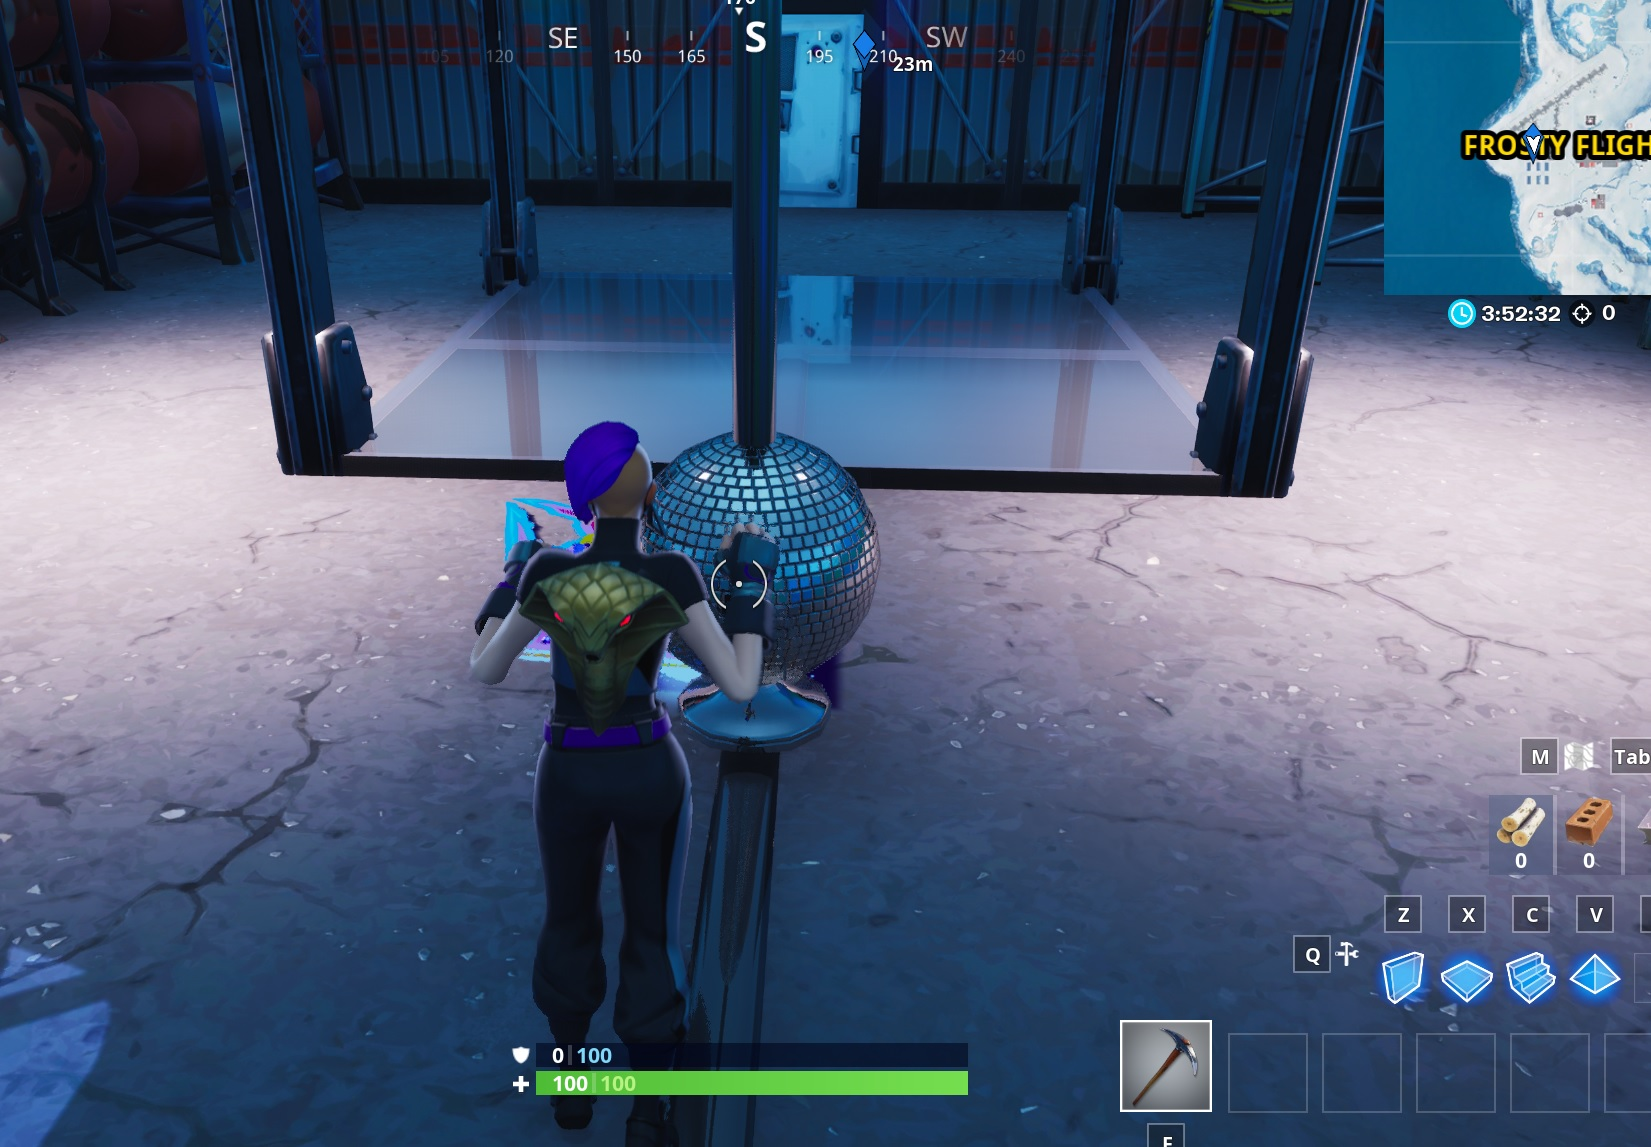 Fortnite Dance With Others To Raise The Disco Ball In An Icy Airplane Hangar Vg247